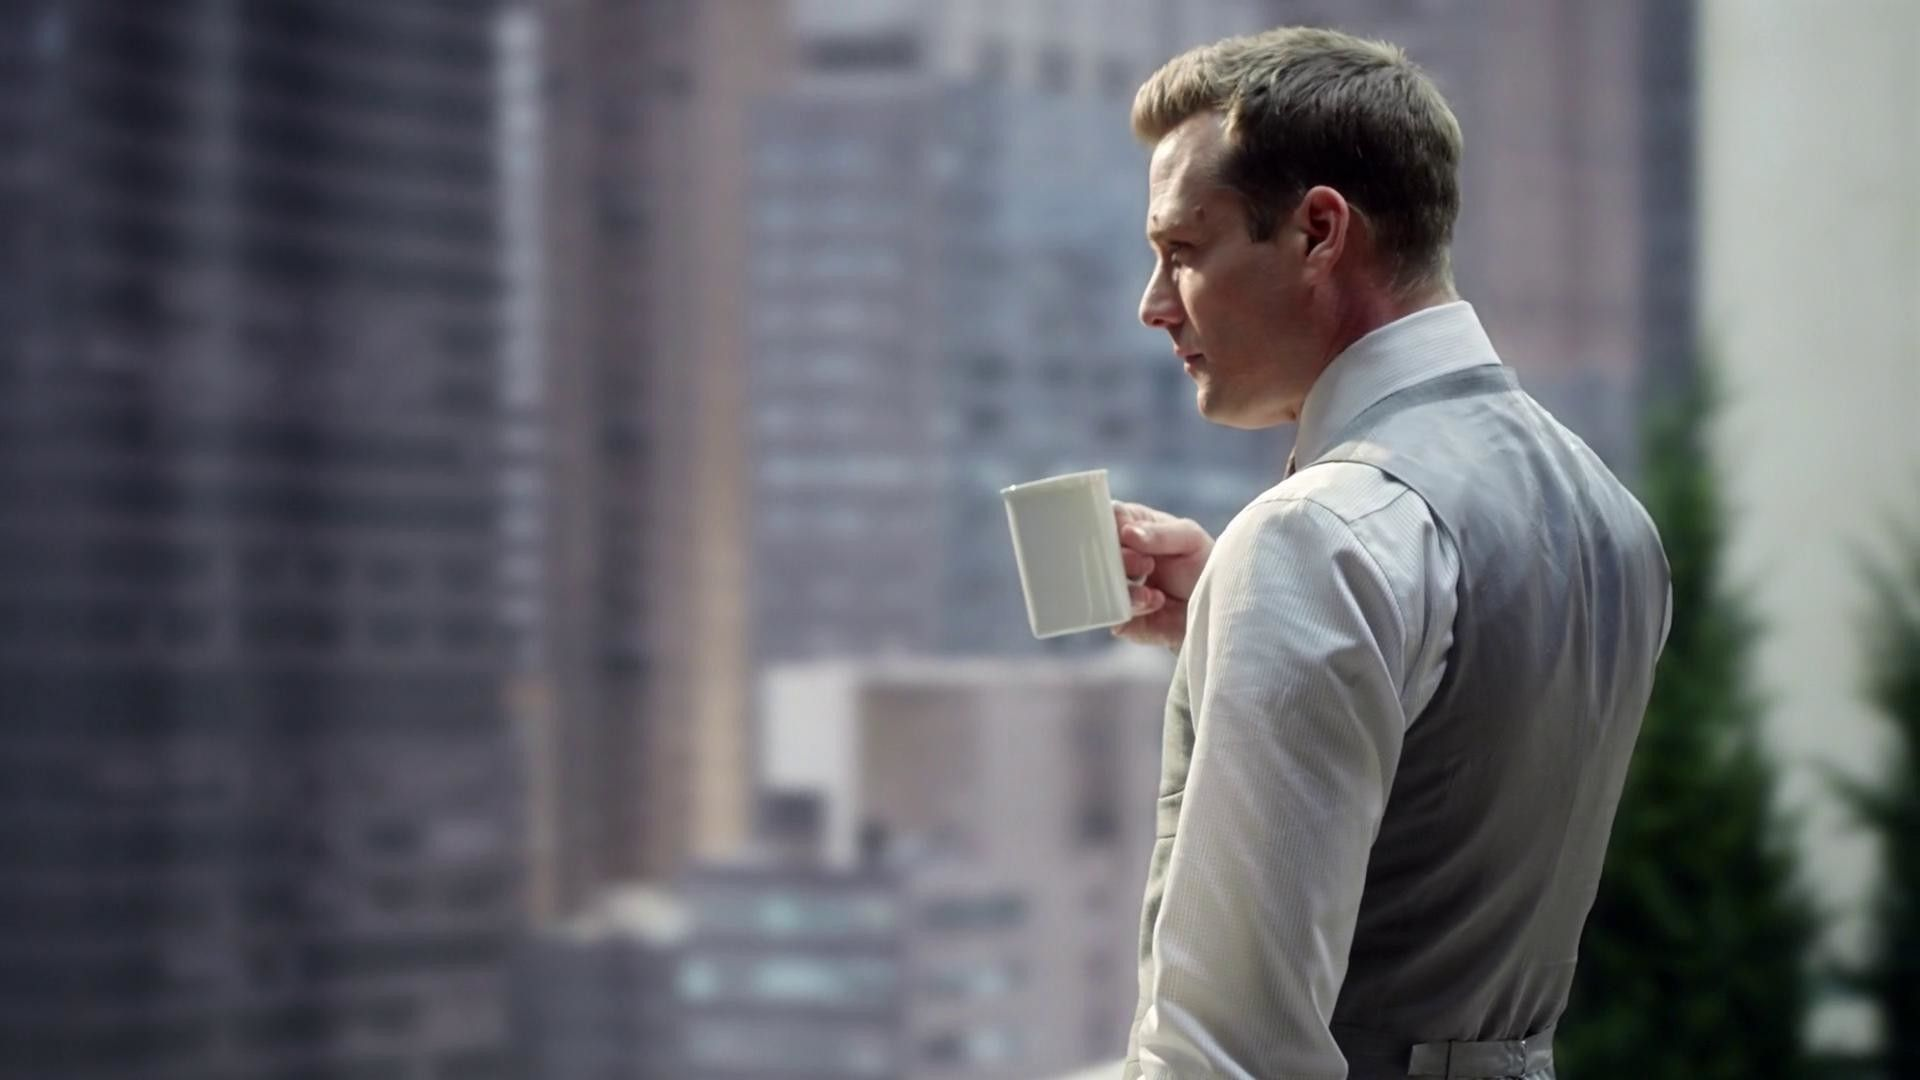 75 Harvey Specter Wallpapers On Wallpaperplay In 2020 Harvey Specter Harvey Specter Quotes Harvey